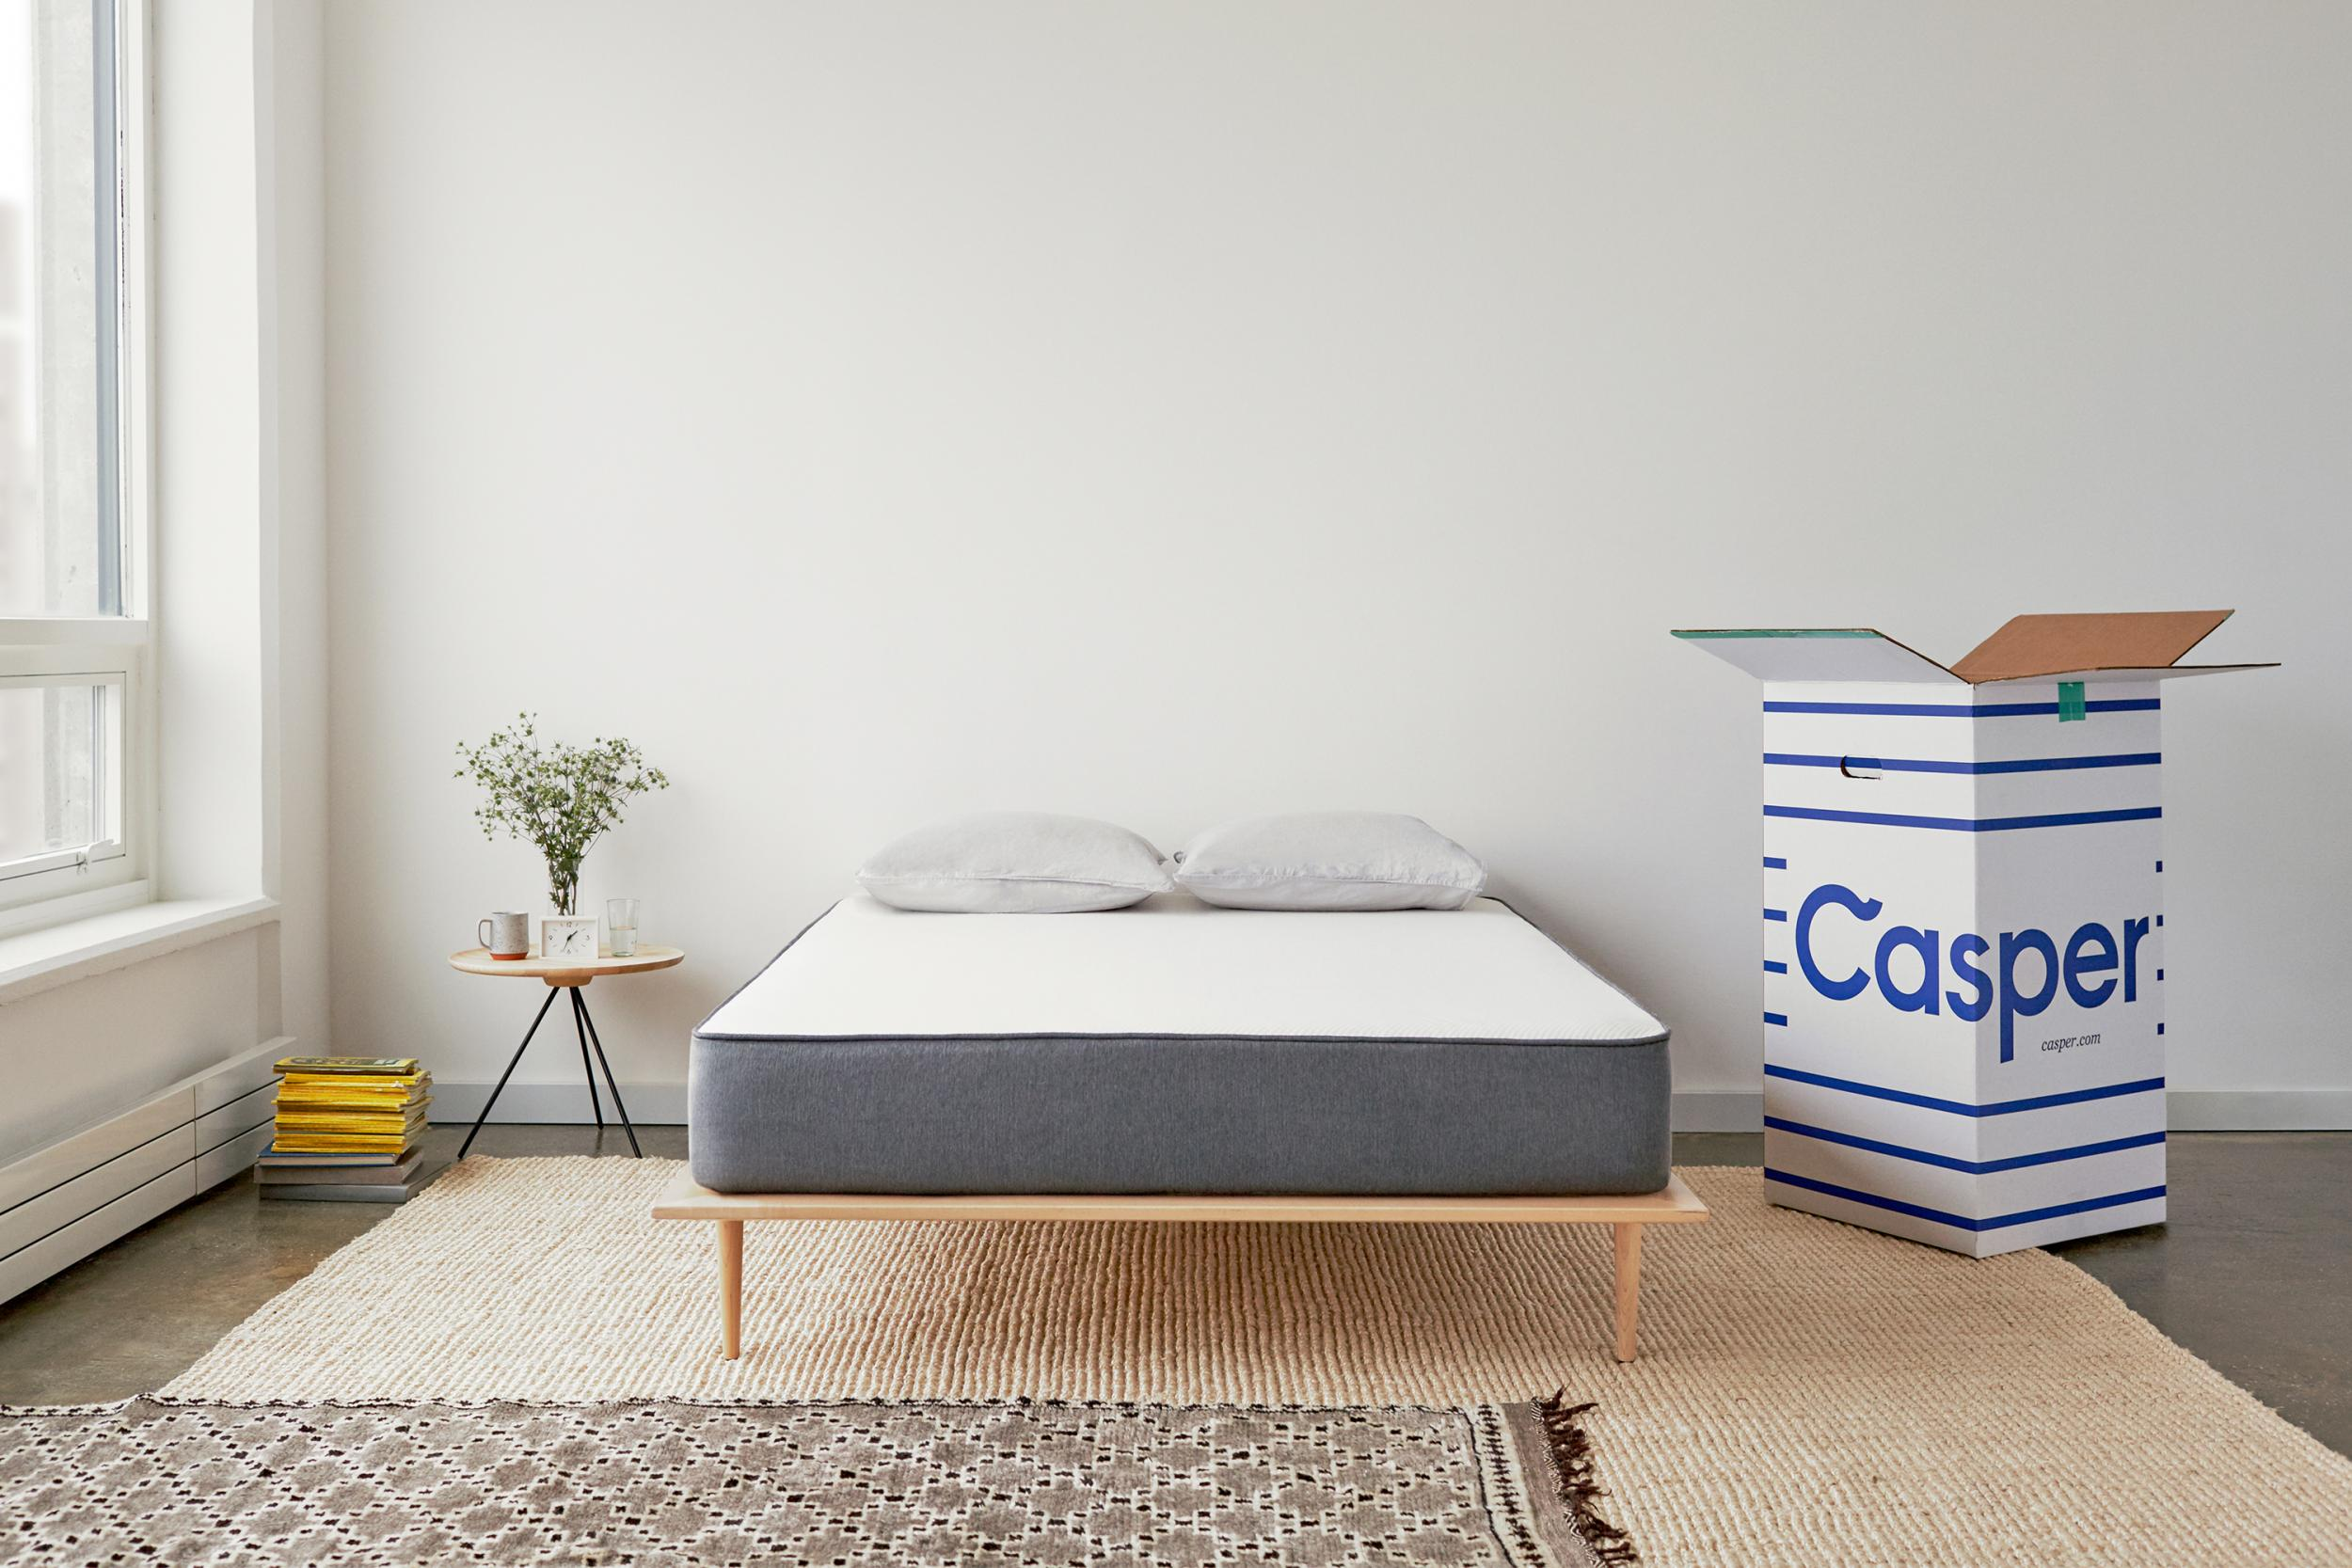 Casper Mattress Sale Where To Find 40 Discounts As The Brand Closes In The Uk The Independent